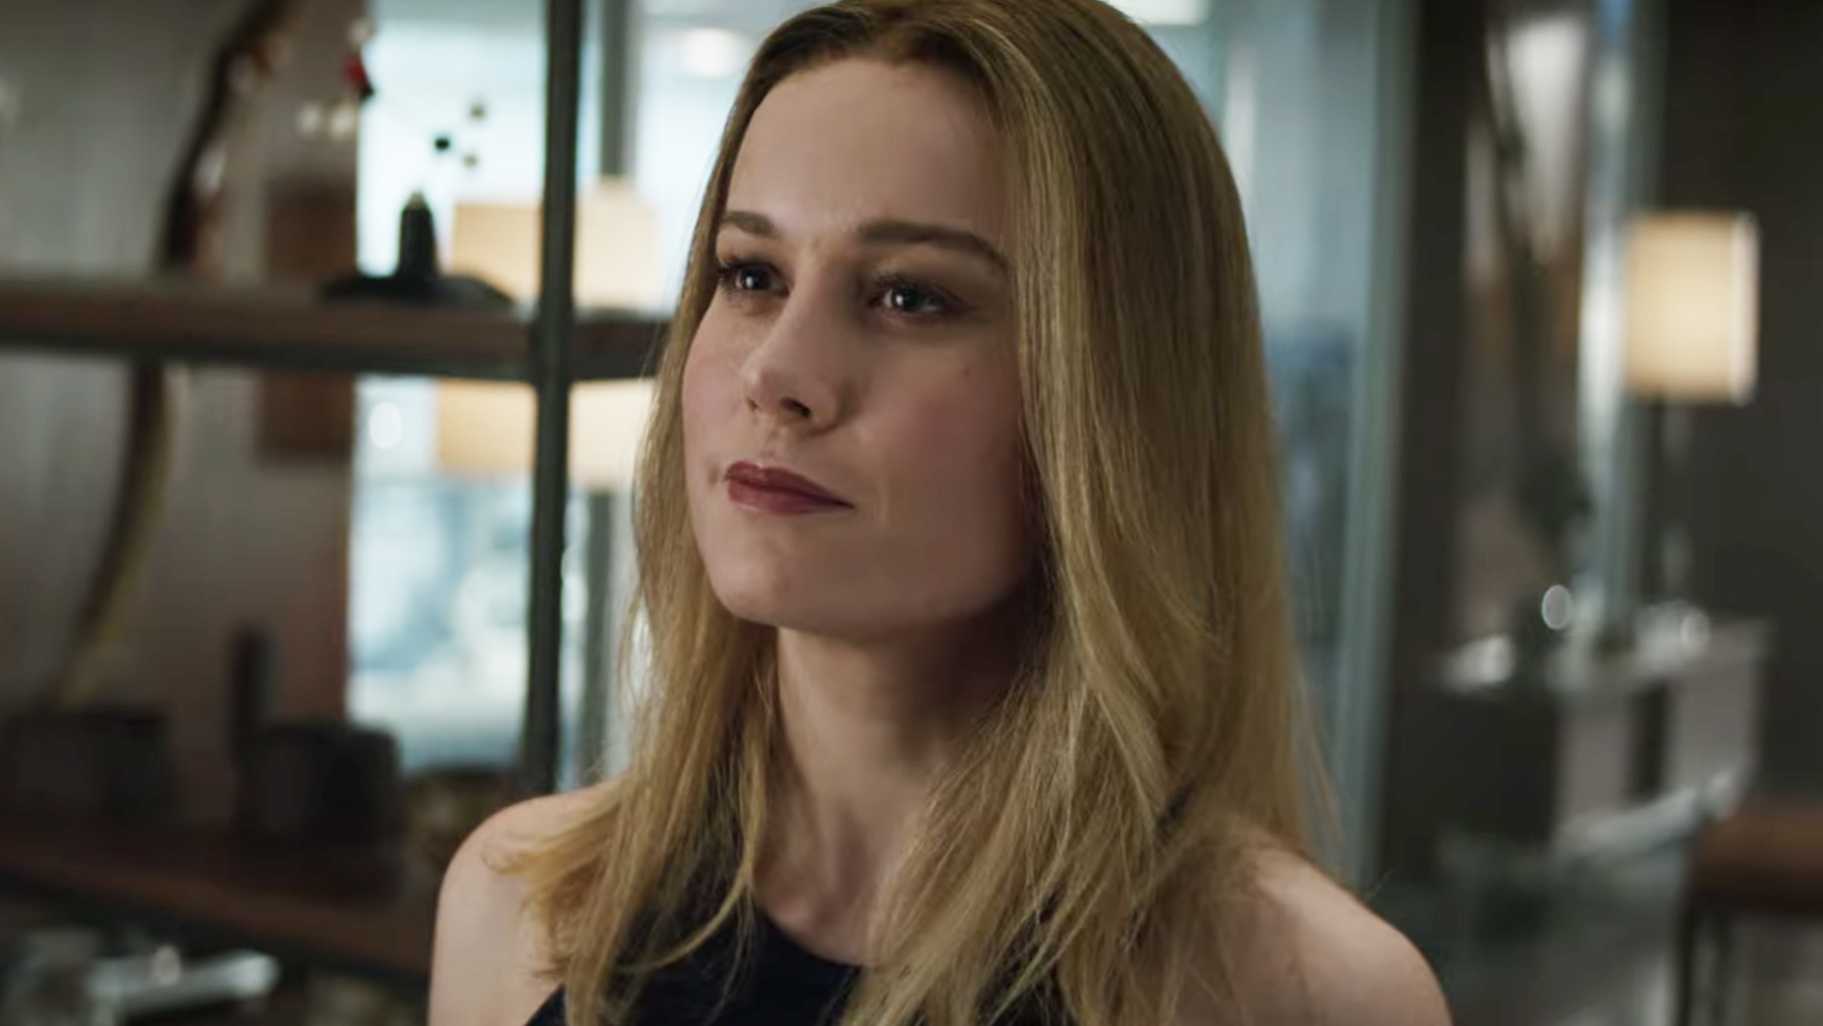 New Endgame trailer brings Captain Marvel into the mix